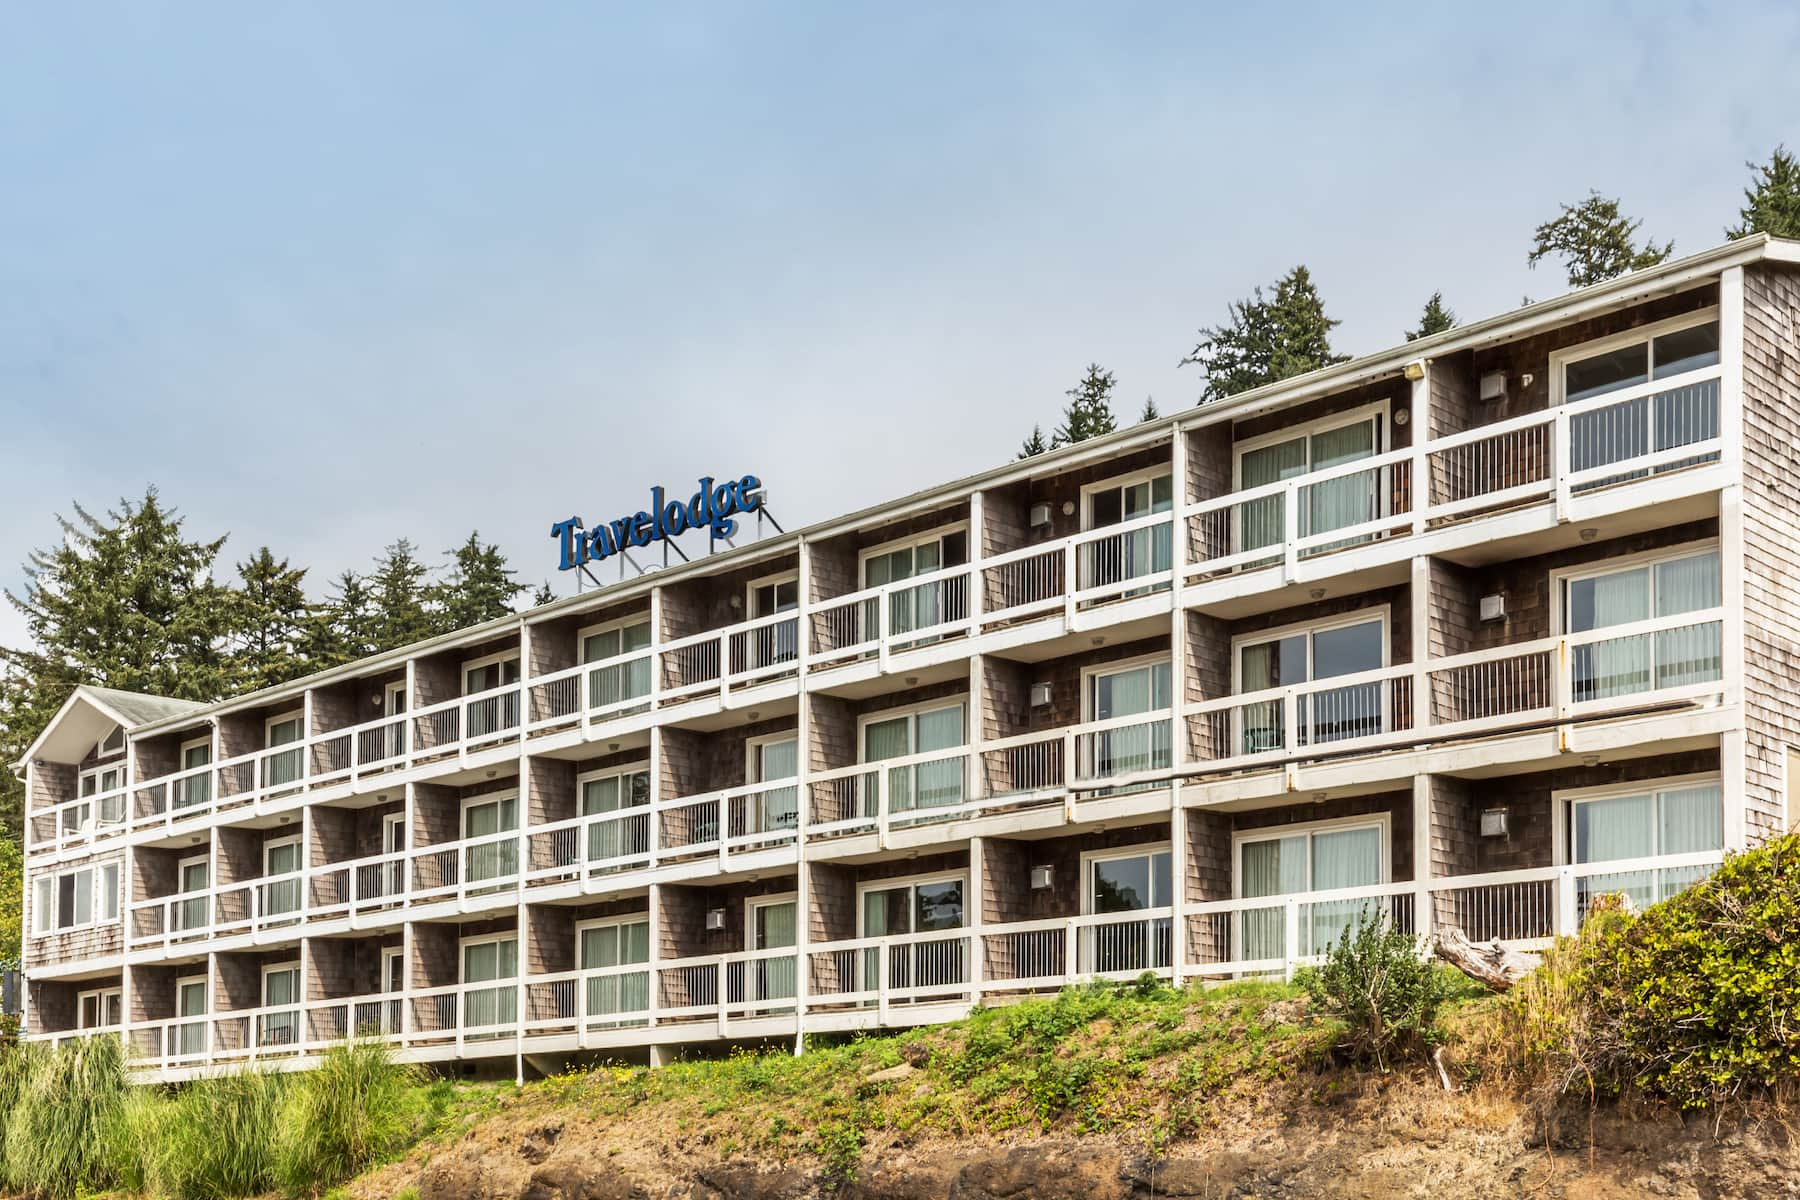 Exterior of Travelodge Depoe Bay hotel in Depoe Bay, Oregon